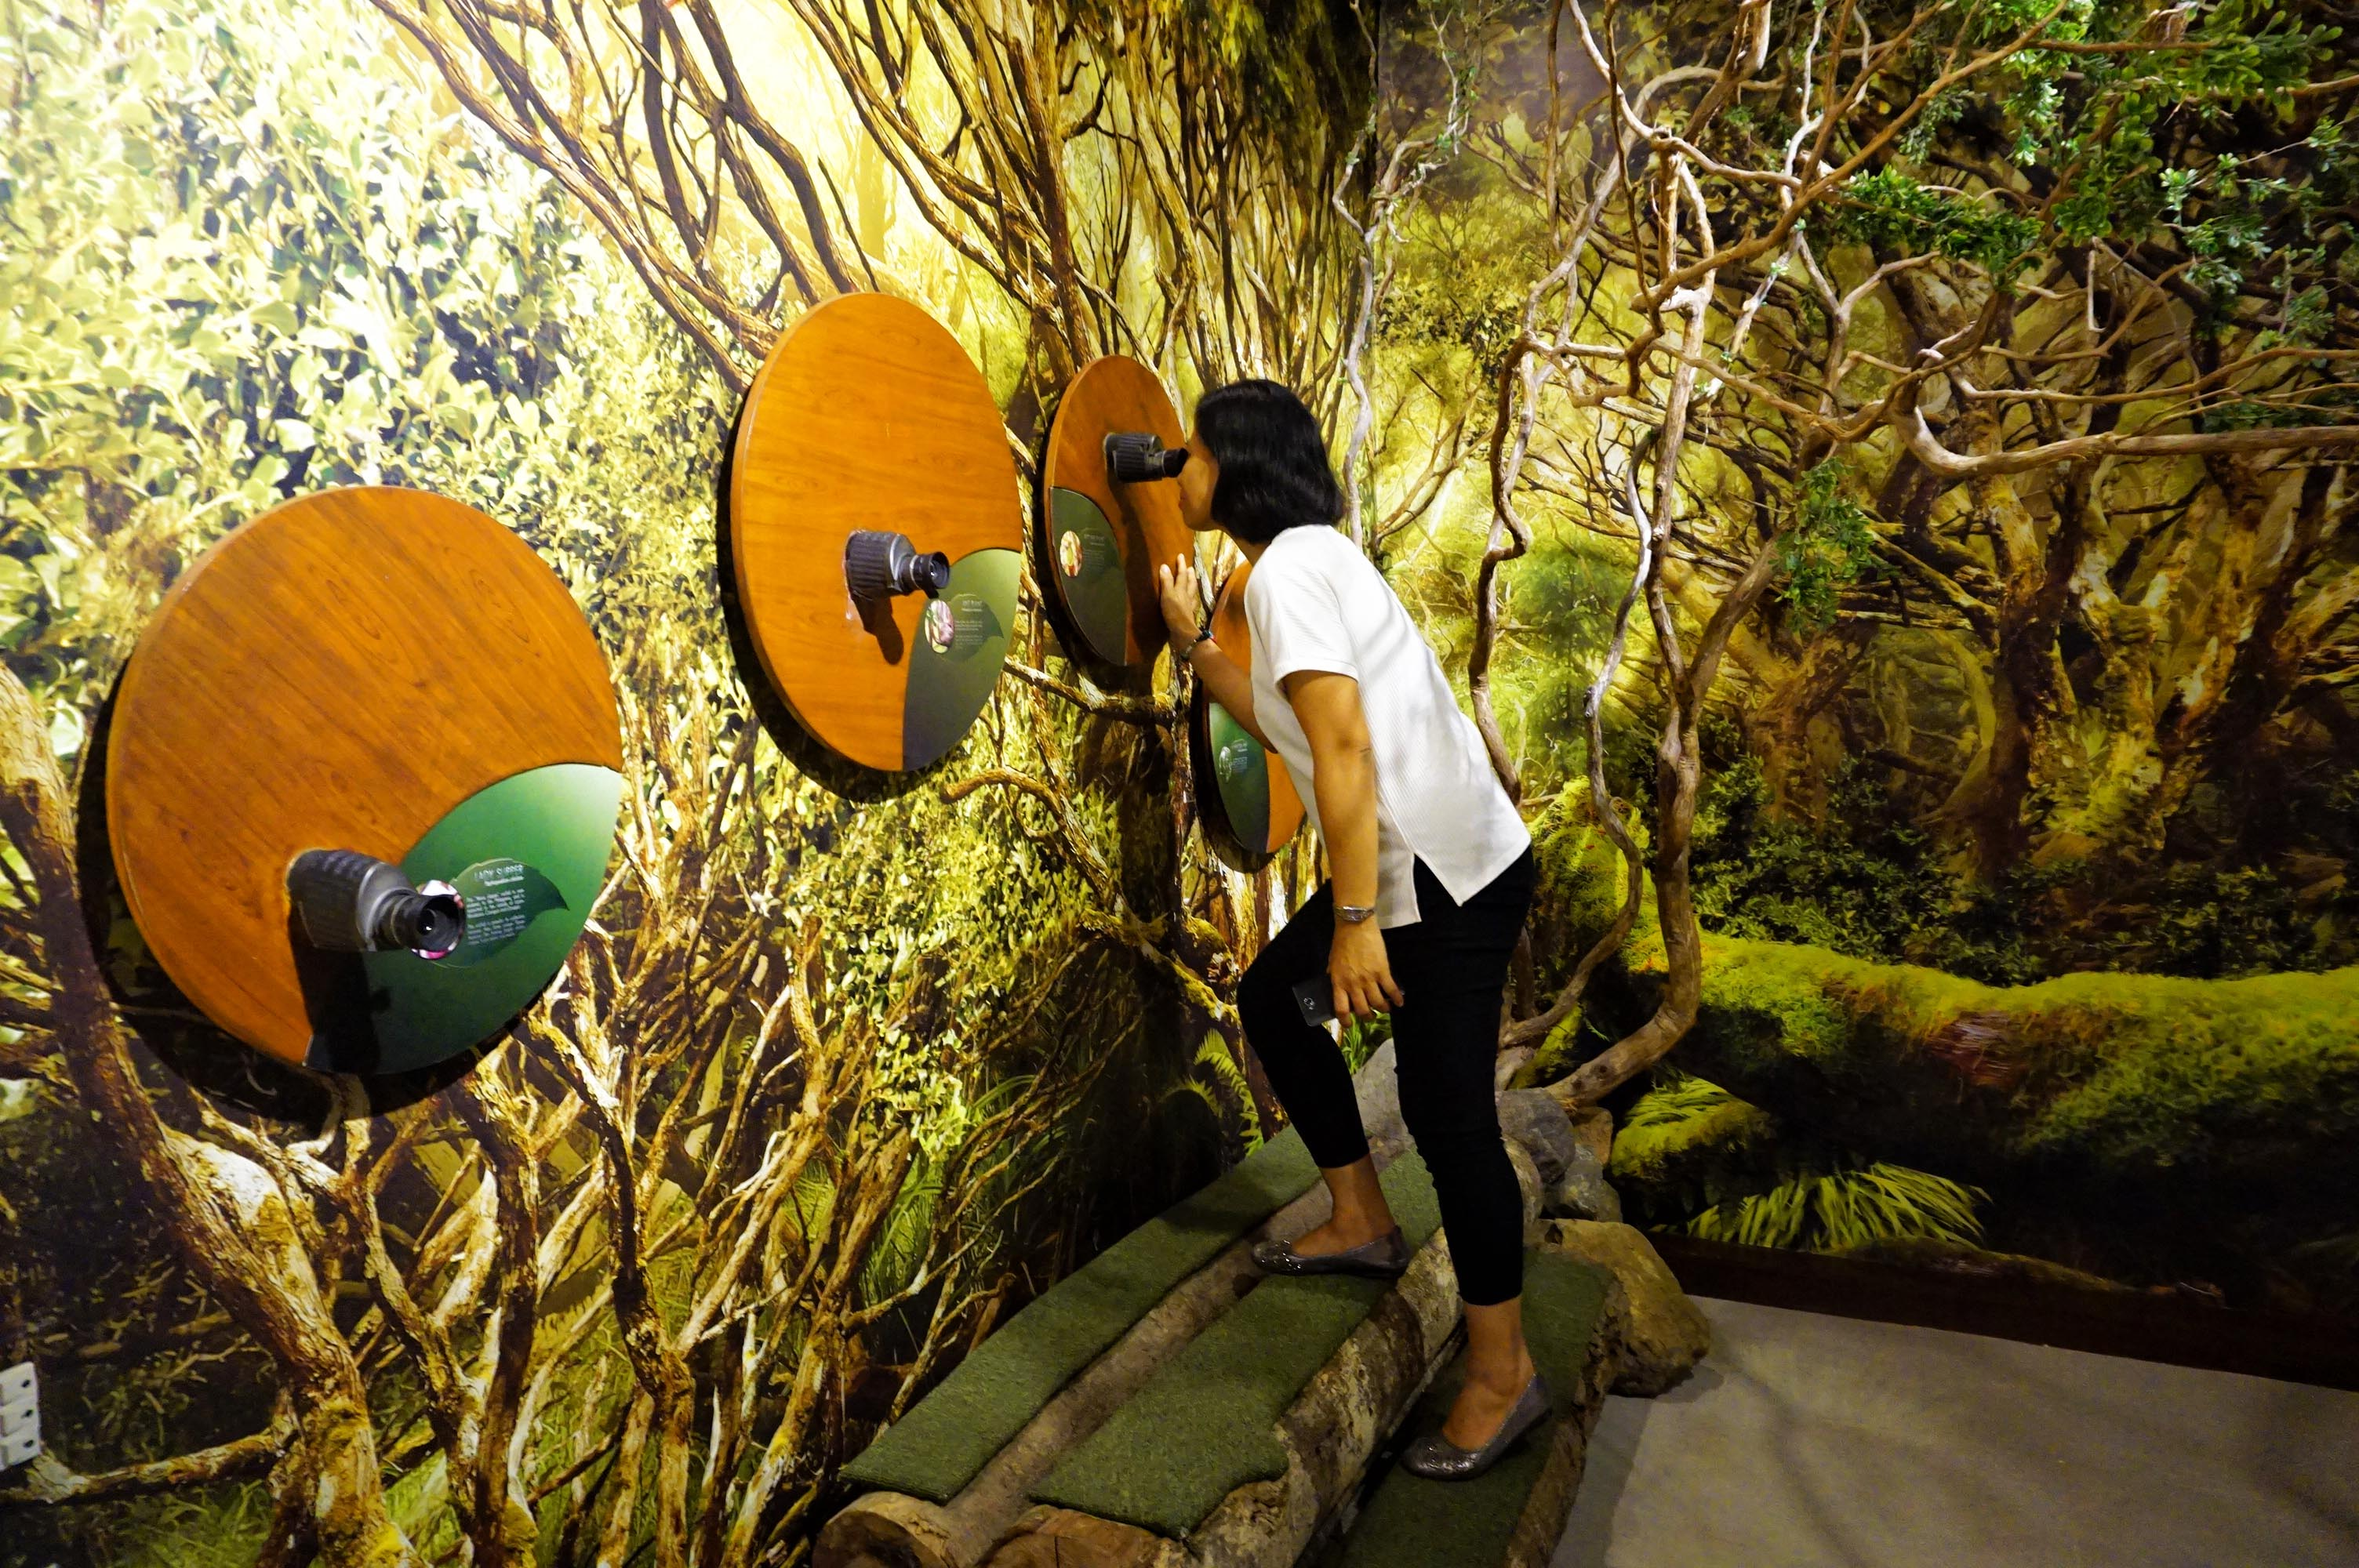 Those wanting to see up close Mt. Hamiguitan can do so with the opening of the Natural Science Museum constructed by the provincial government of Davao Oriental. Photo by Louie Lapat